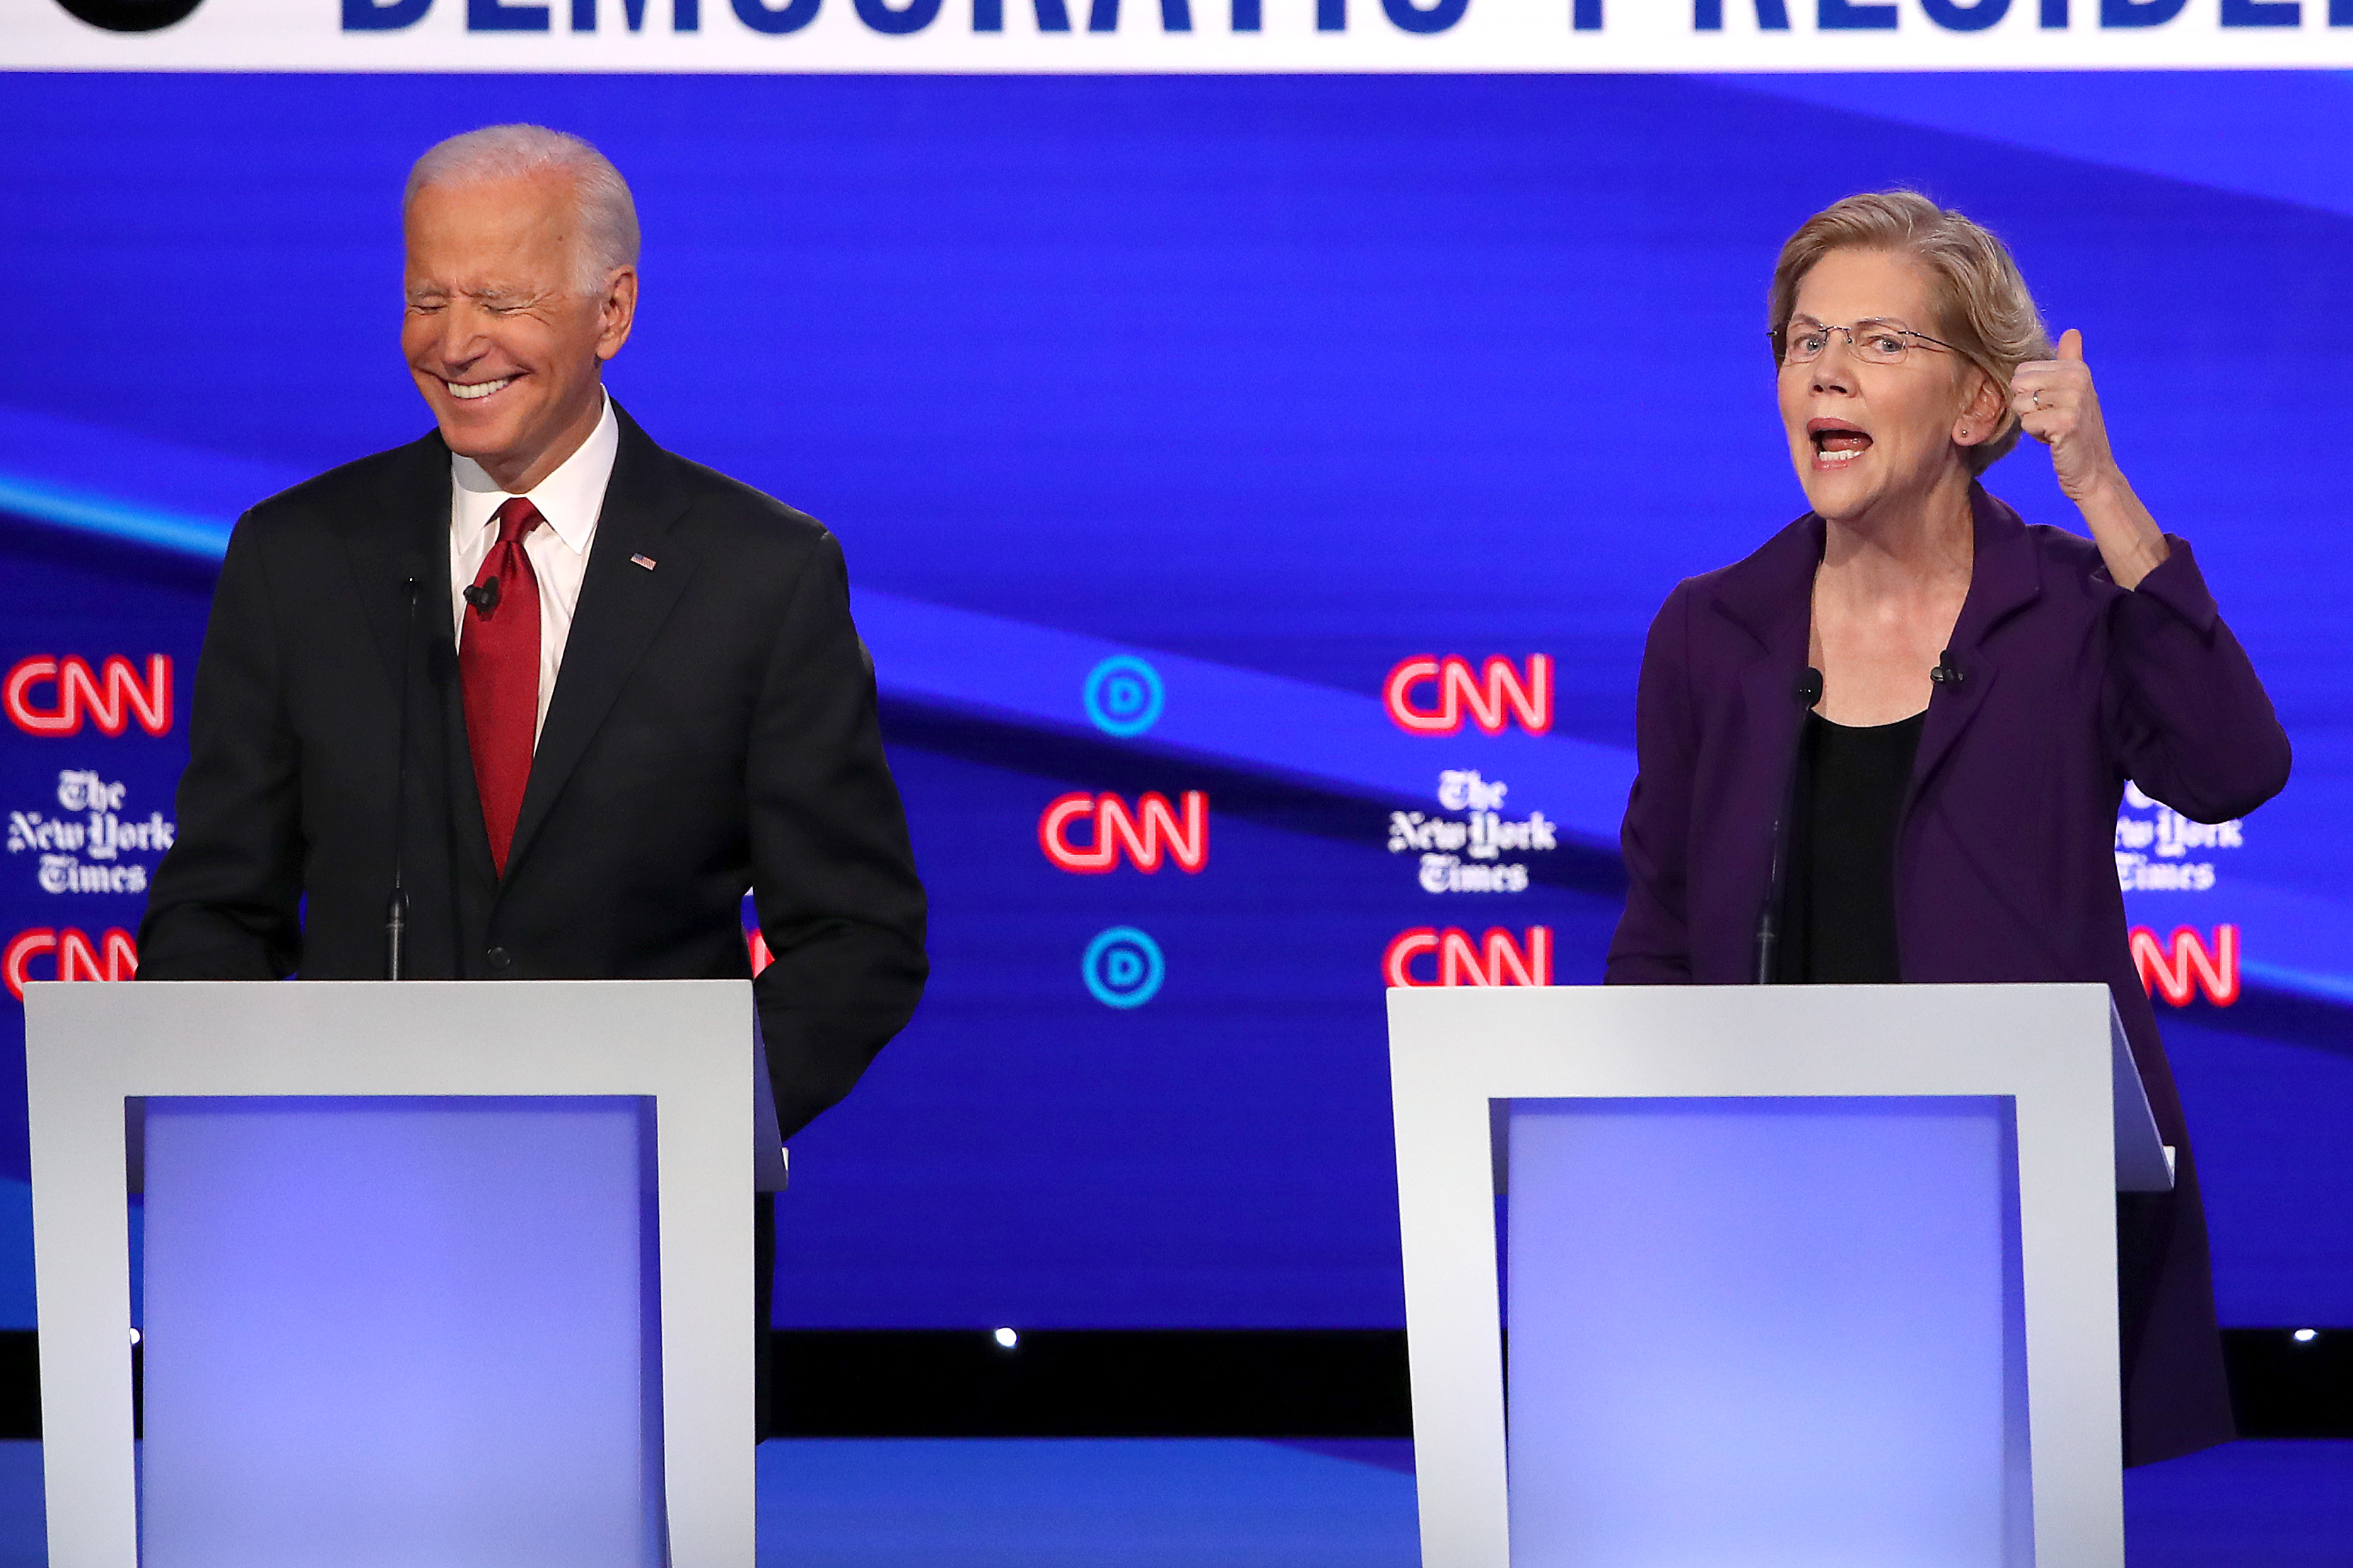 WESTERVILLE, OHIO - OCTOBER 15: Former Vice President Joe Biden and Sen. Elizabeth Warren (D-MA) react on stage during the Democratic Presidential Debate at Otterbein University on October 15, 2019 in Westerville, Ohio. A record 12 presidential hopefuls are participating in the debate hosted by CNN and The New York Times. (Photo by Win McNamee/Getty Images)